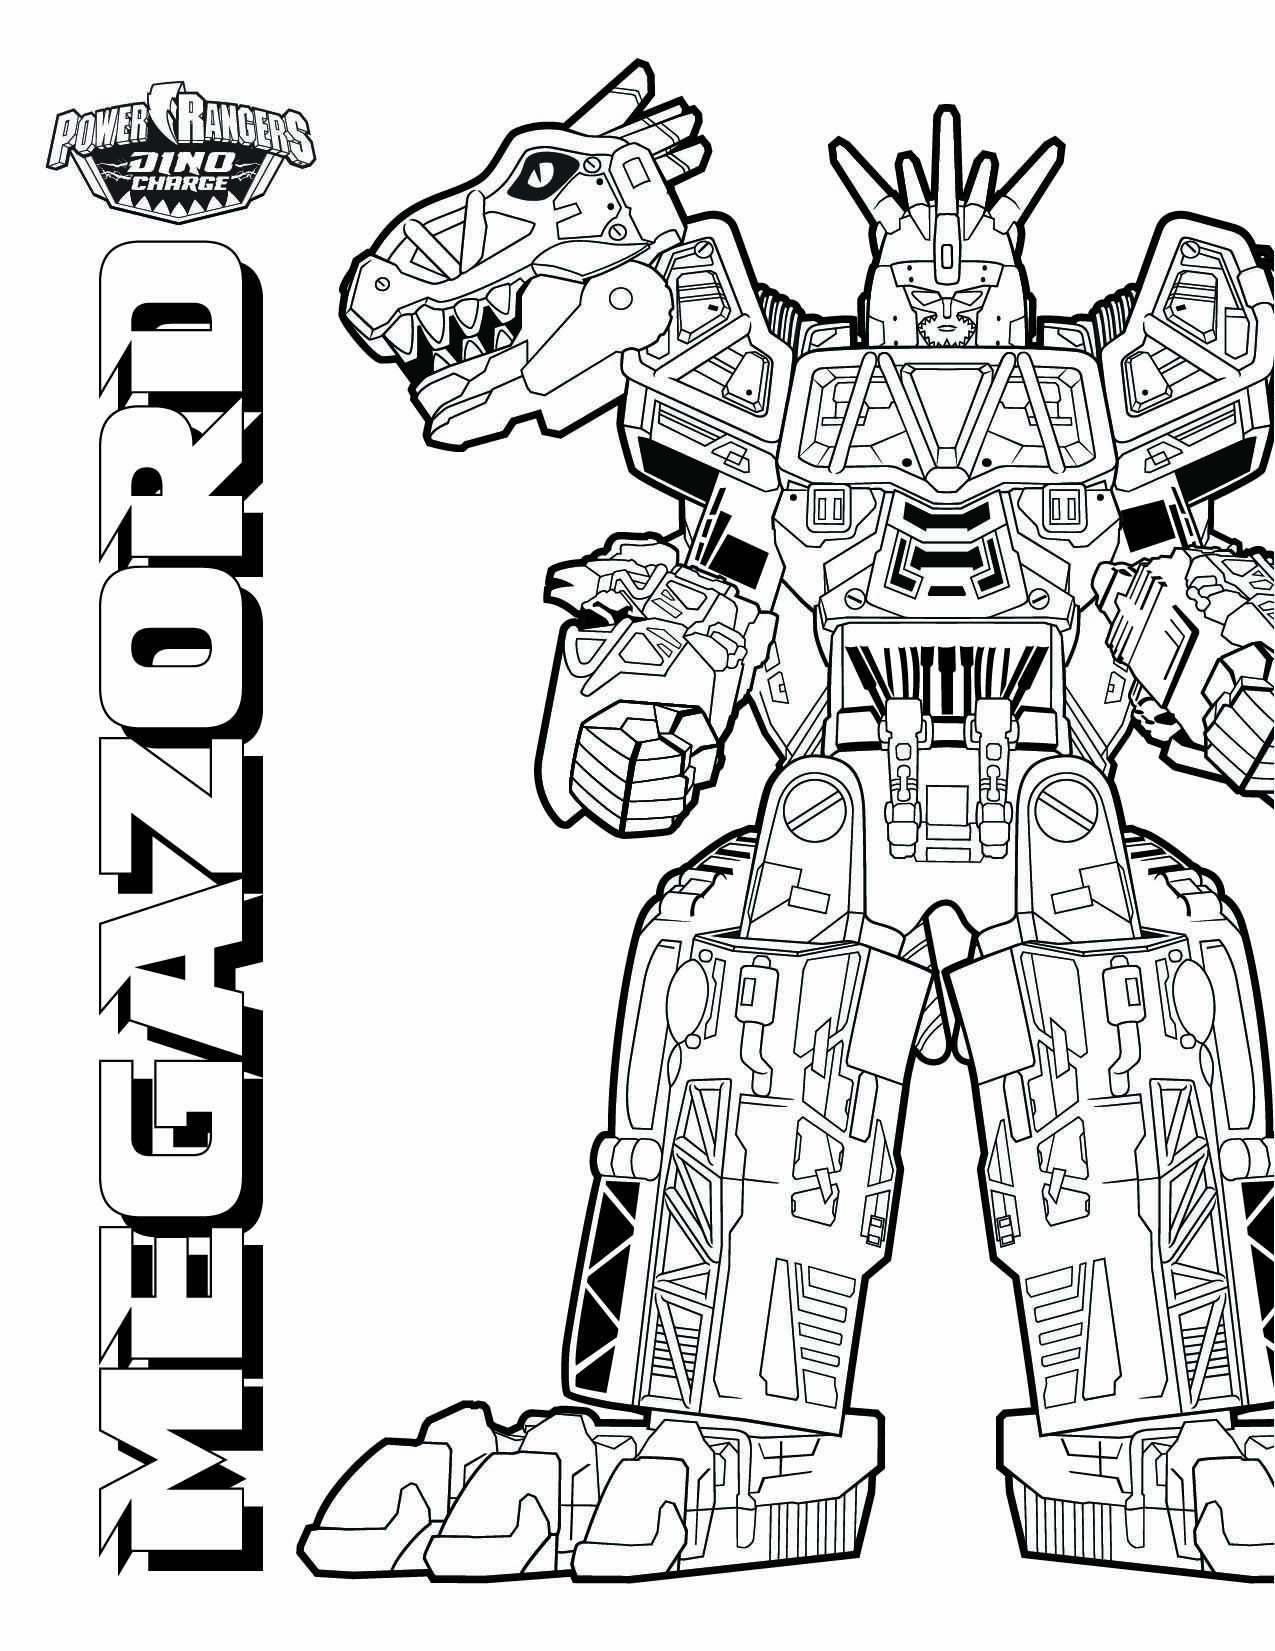 Megazord Power Rangers Coloring Pages Train Coloring Pages